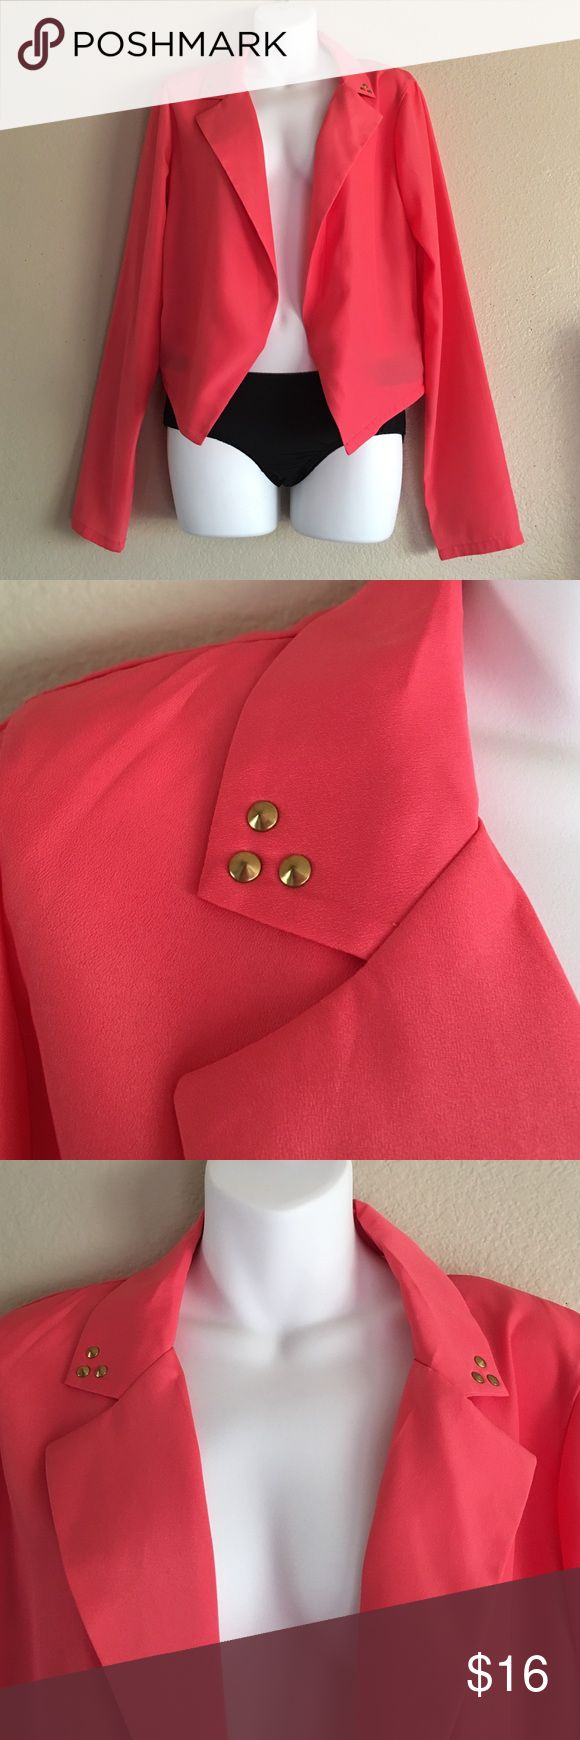 Bingo coral stud blazer This blazer features gold studs on the color.  Size large BONGO Jackets & Coats Blazers